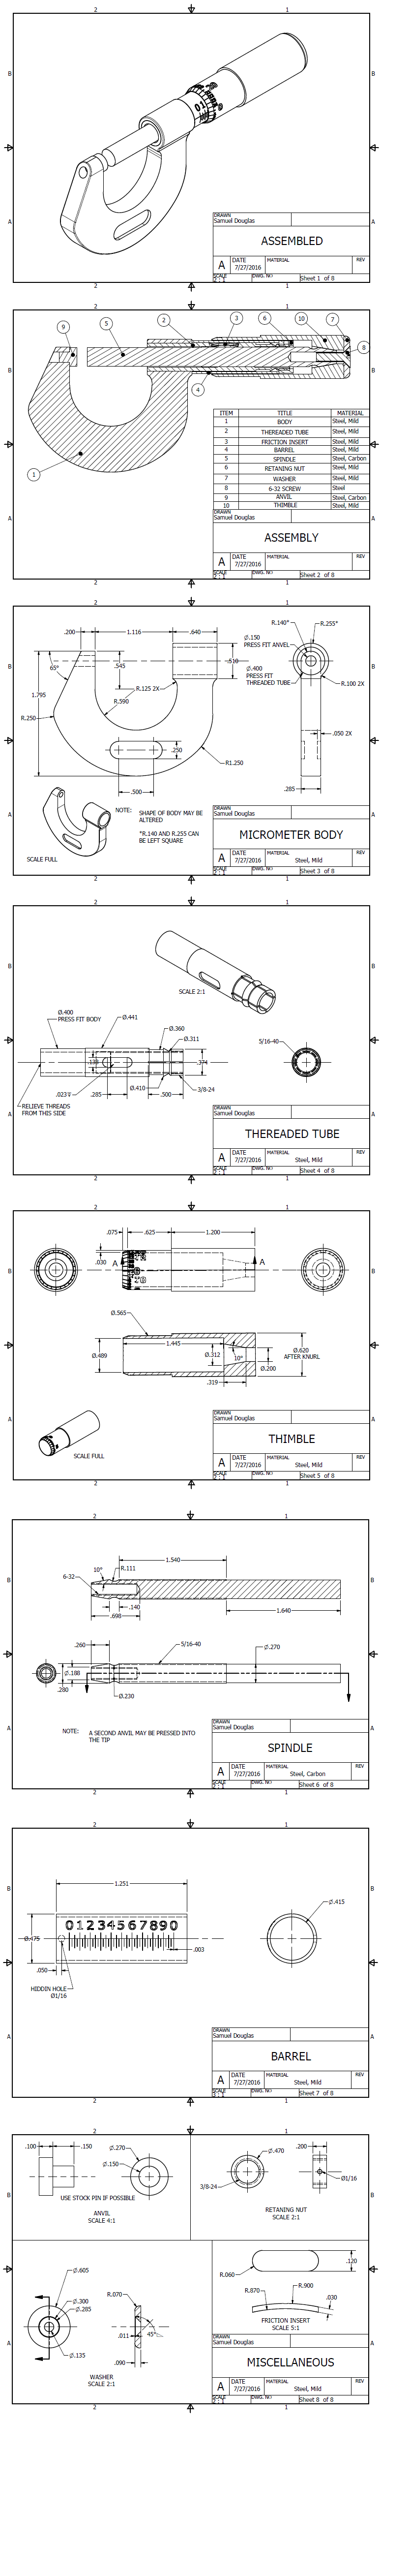 Machining blueprints for a 0 1 inch micrometer machining and machining blueprints for a 0 1 inch micrometer buycottarizona Image collections